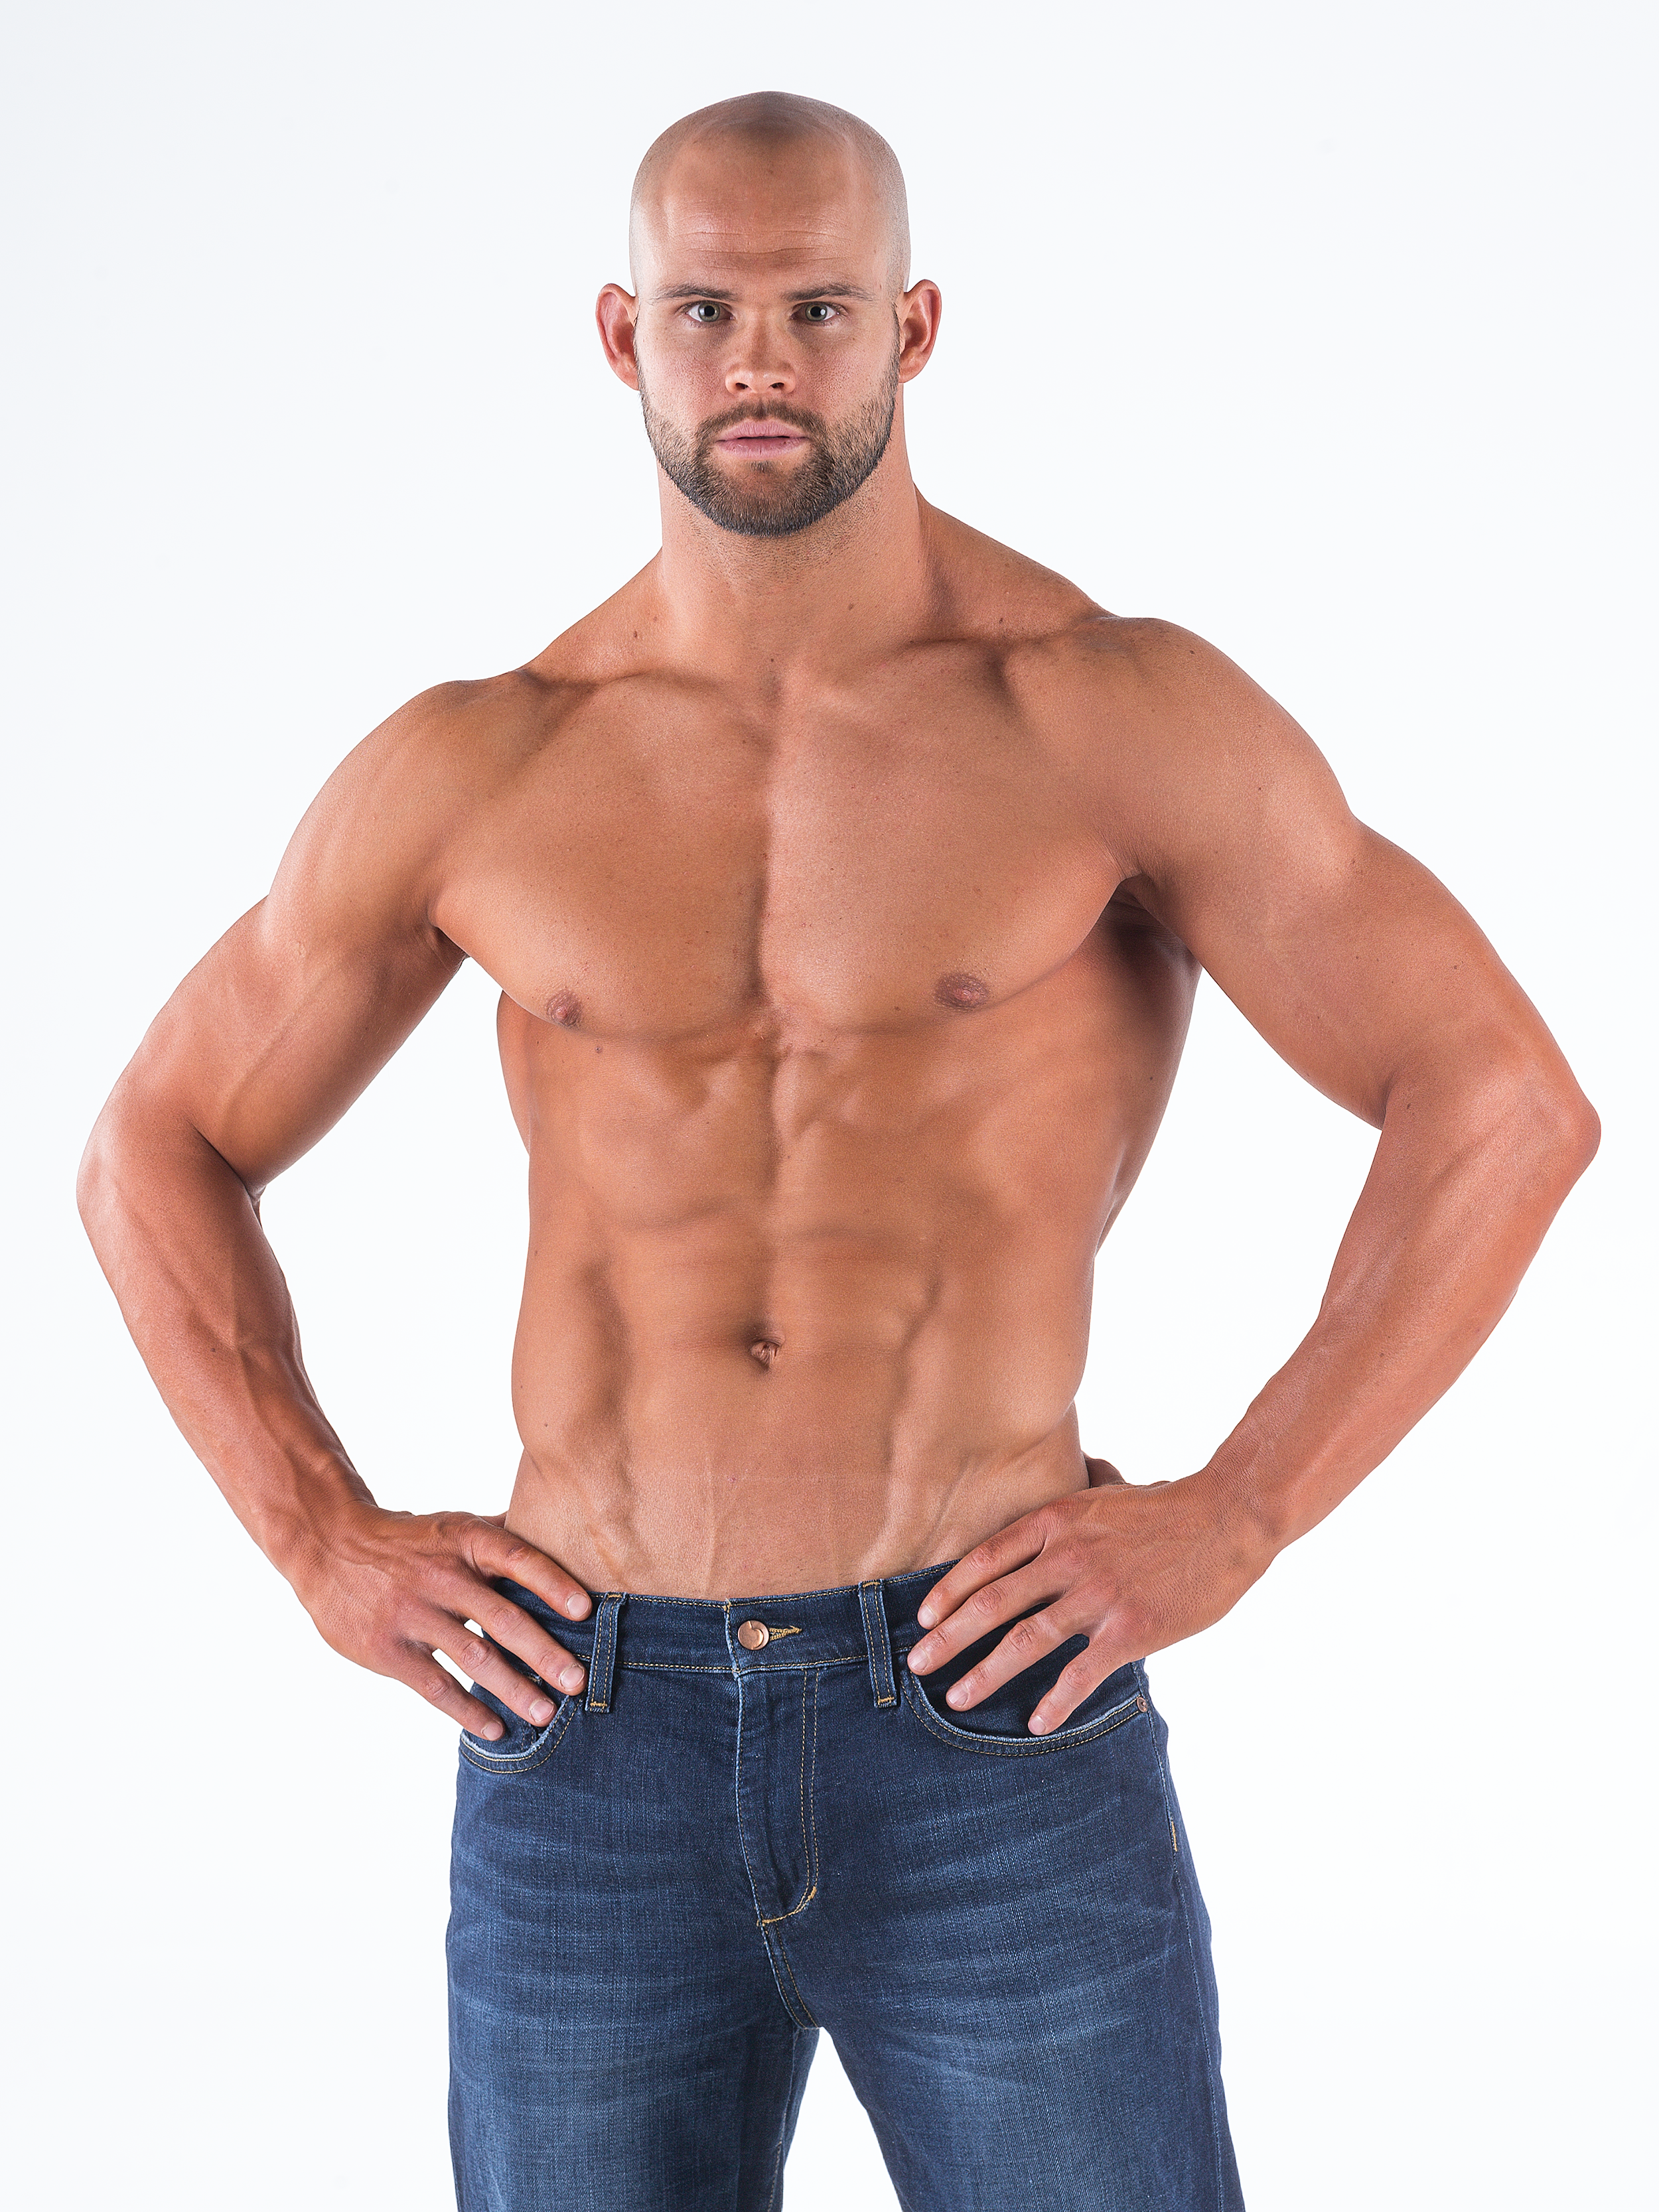 pro-fitness-photos-utah-fitness-ben.png